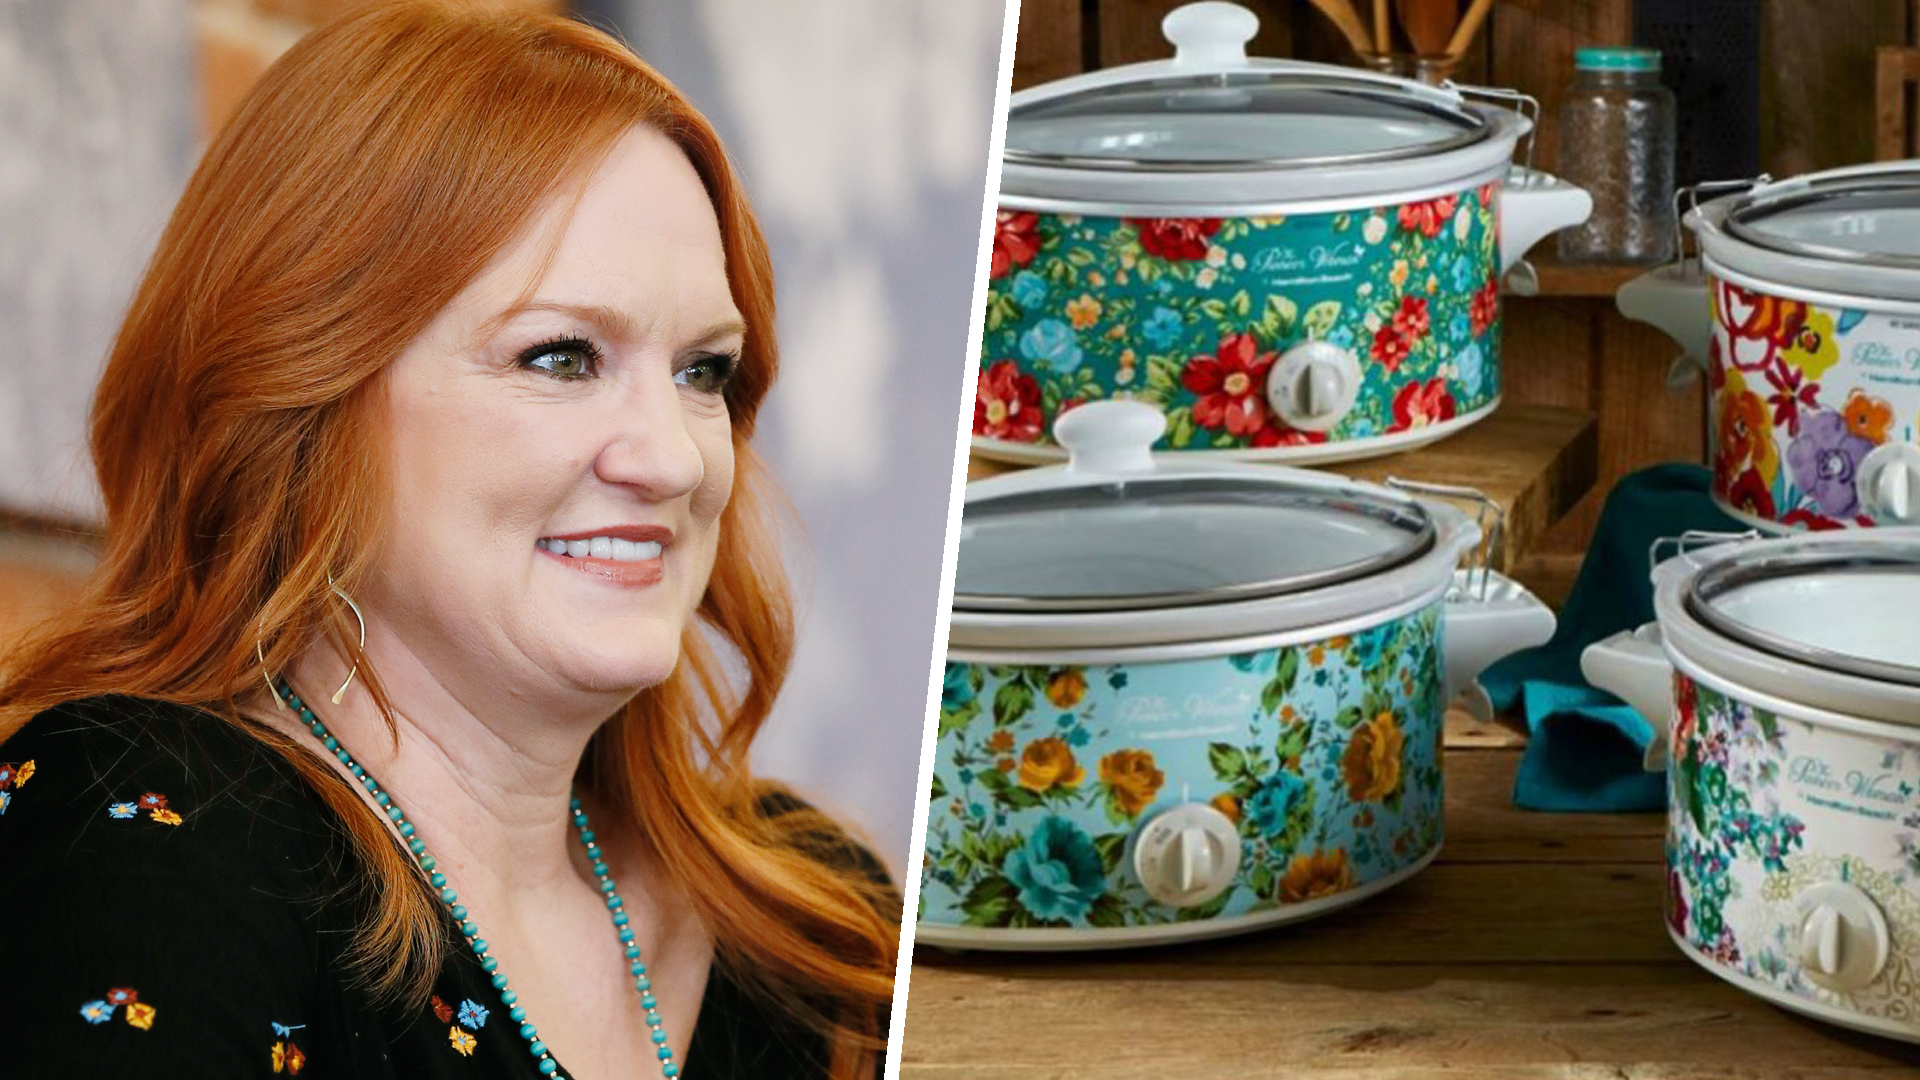 39 Pioneer Woman 39 Ree Drummond 39 S New Slow Are Cookers Selling Out Fast